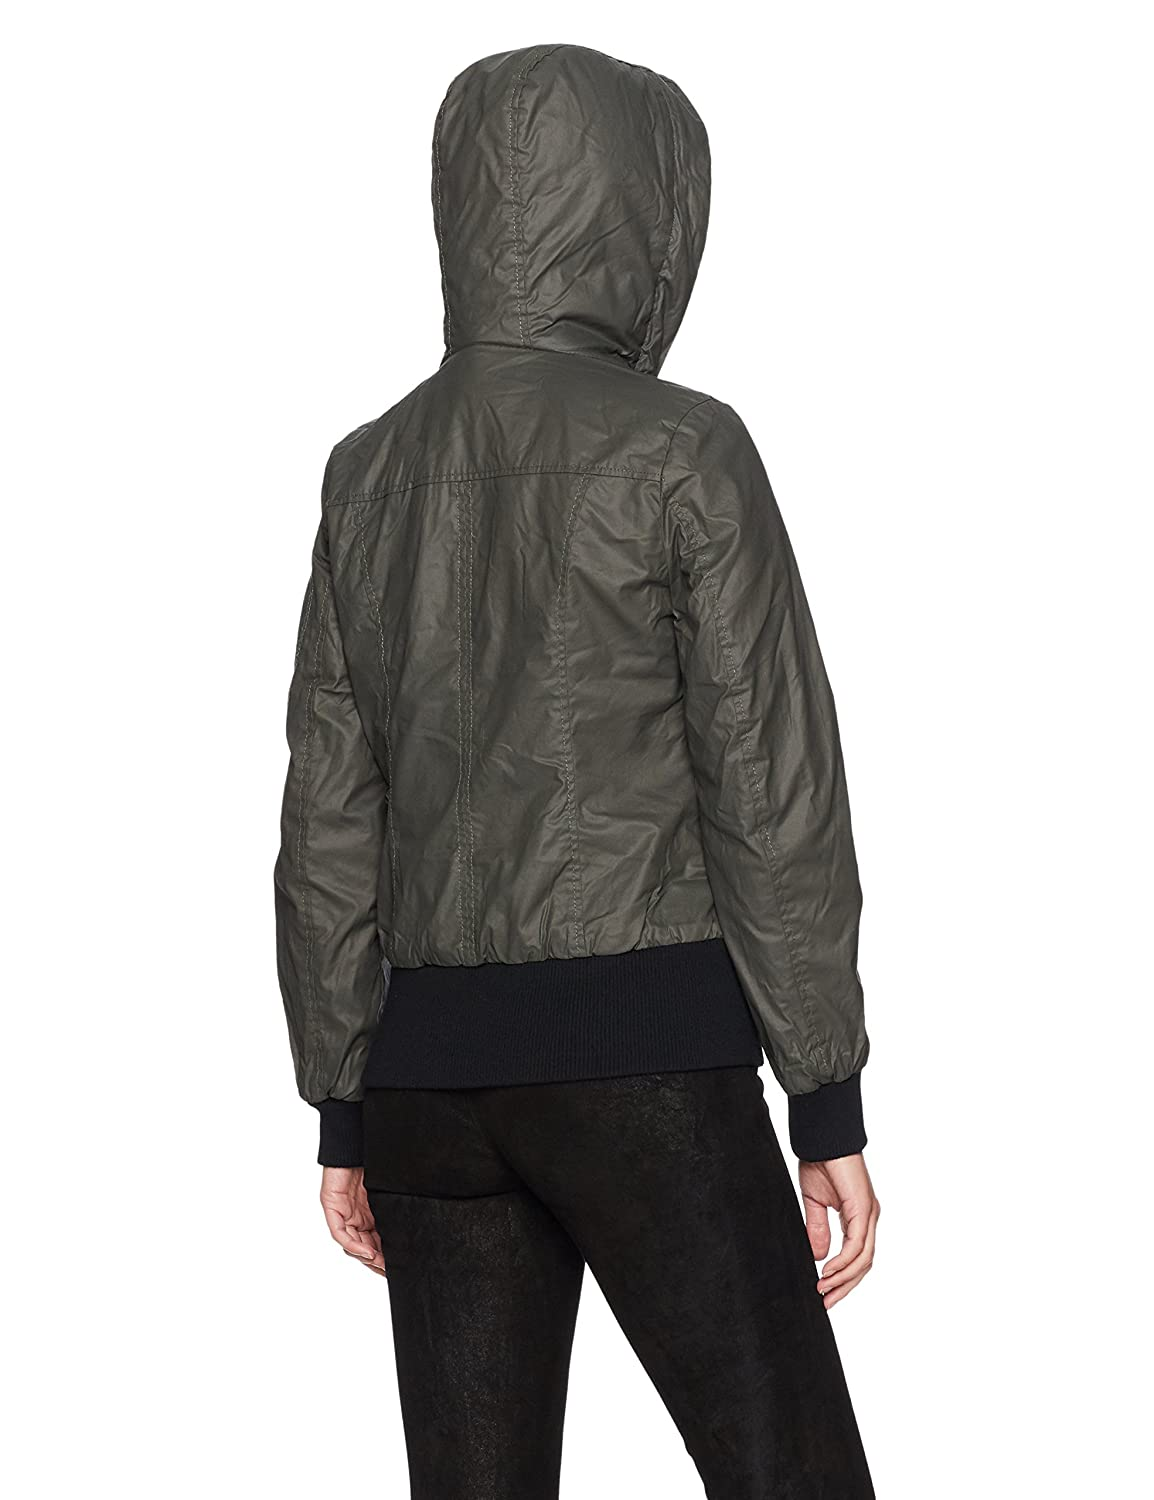 Sebby Collection Womens Waxy Cotton Bomber Jacket with A Fur Hood